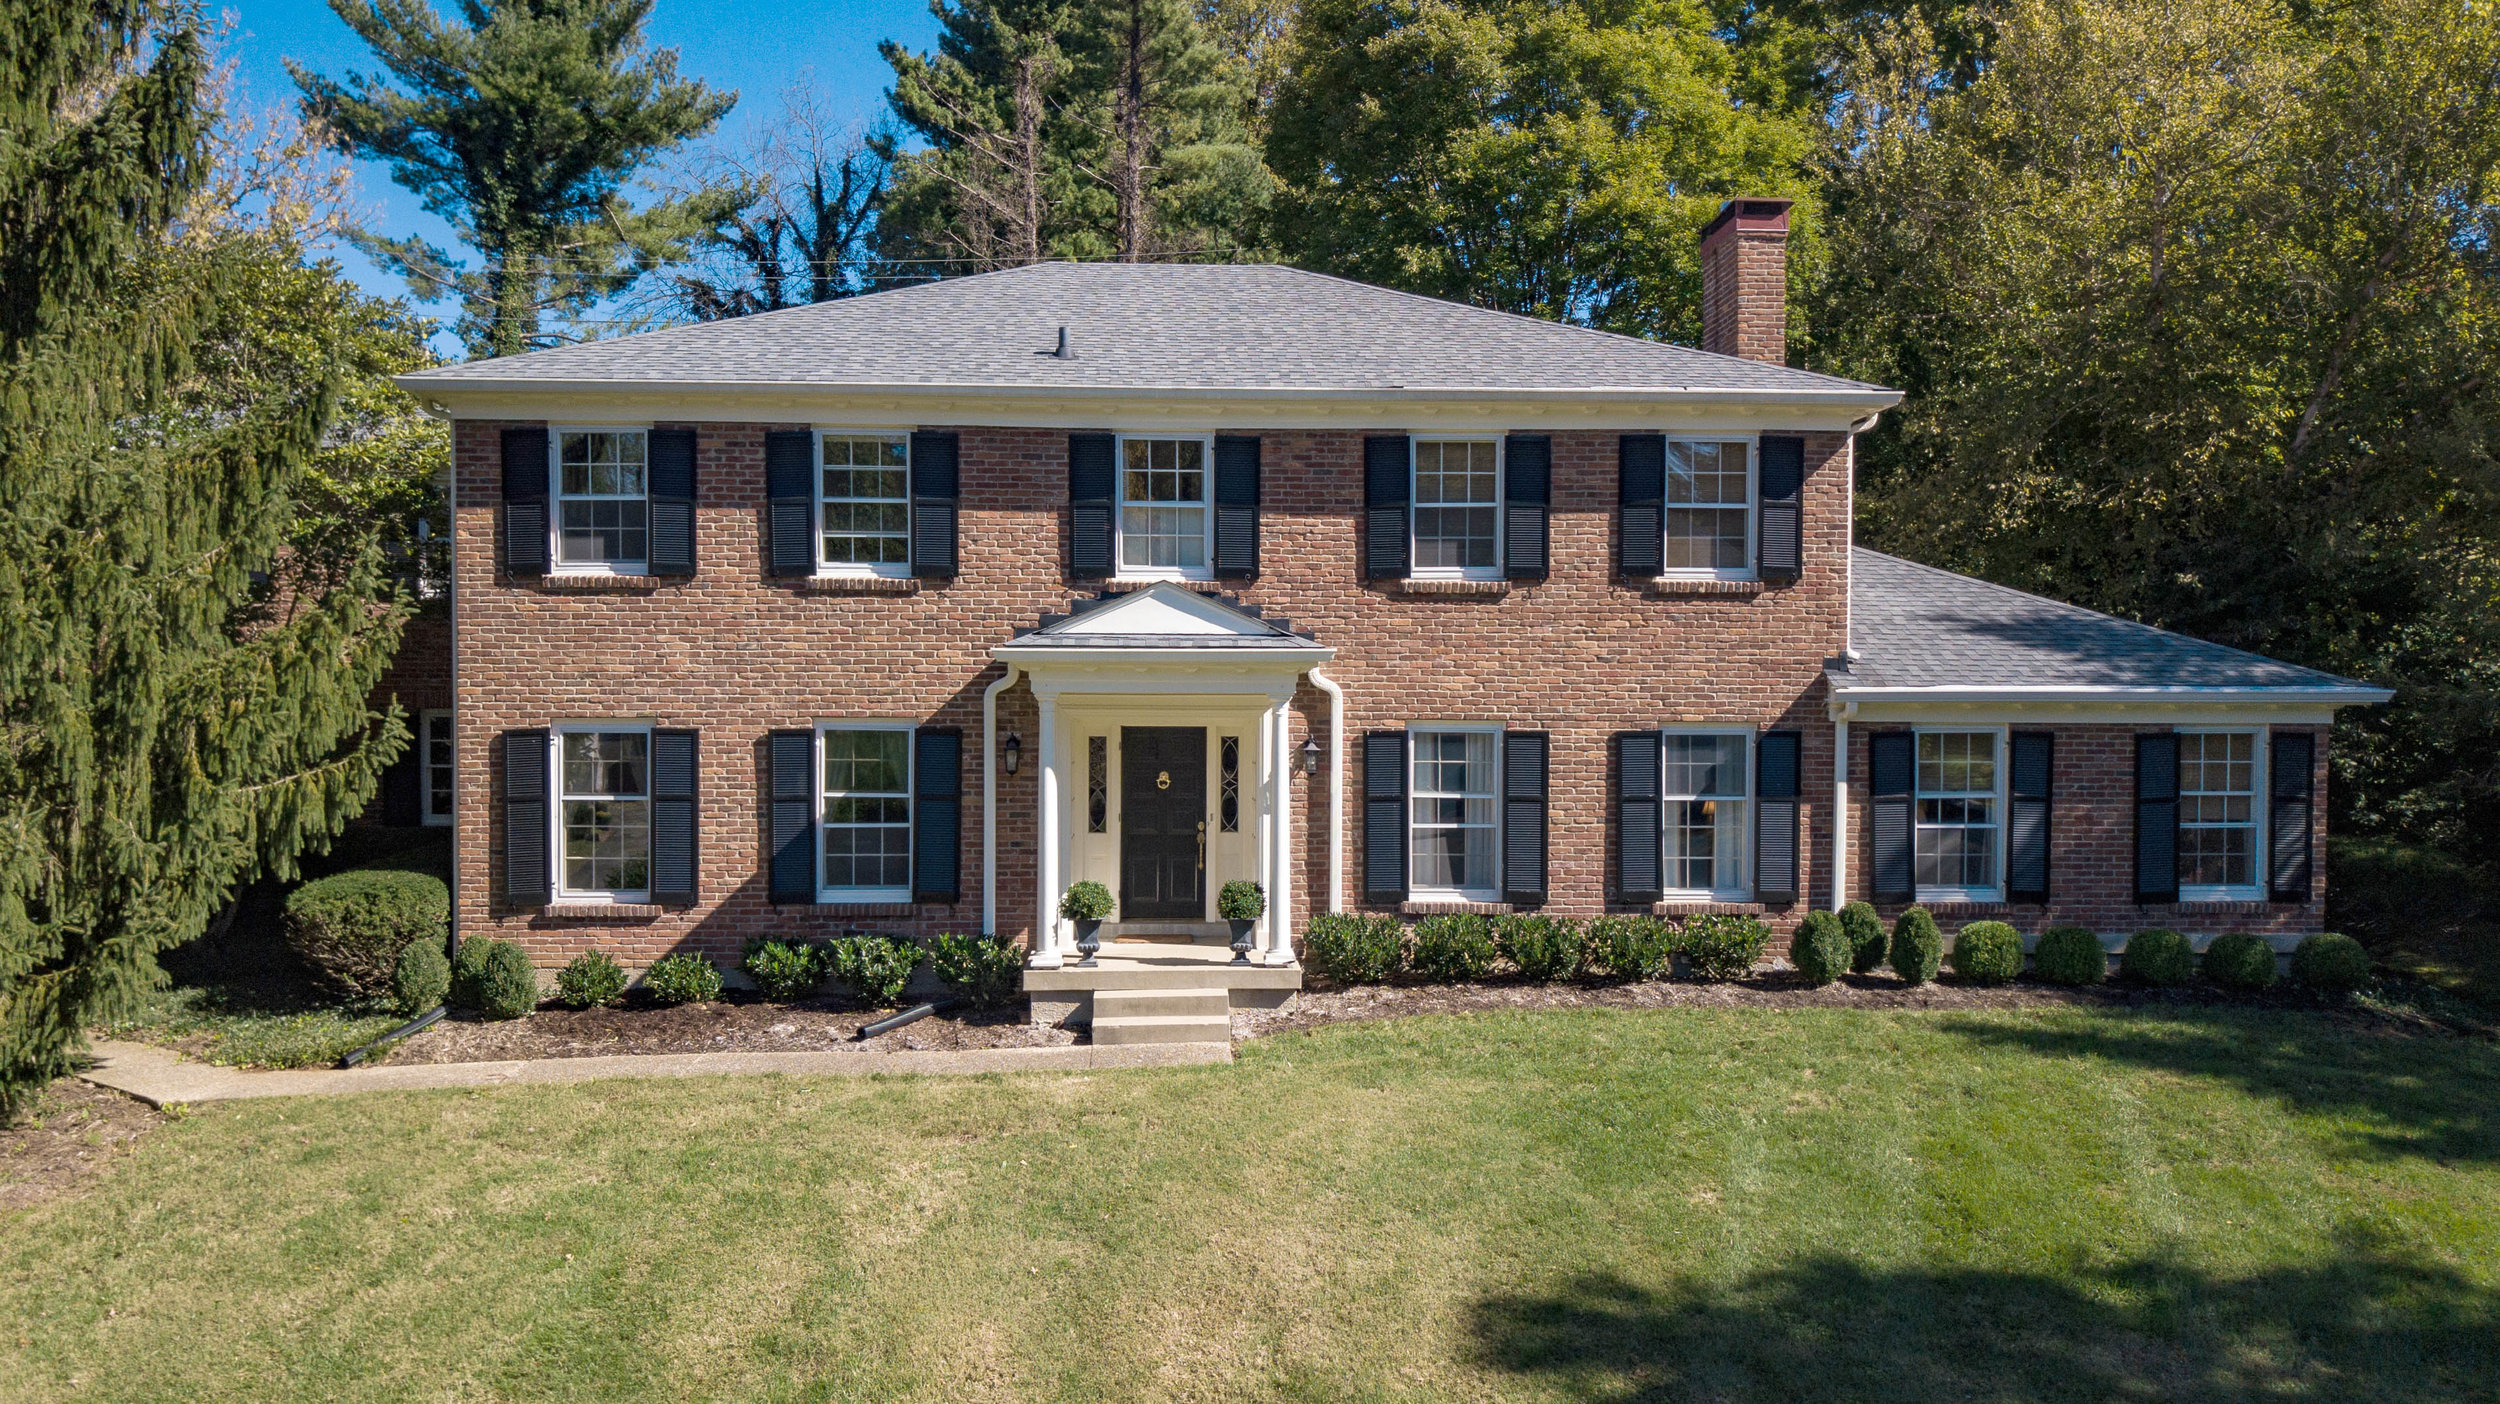 FOR SALE: 155 TOTEM ROAD INDIAN HILLS LOUISVILLE KY